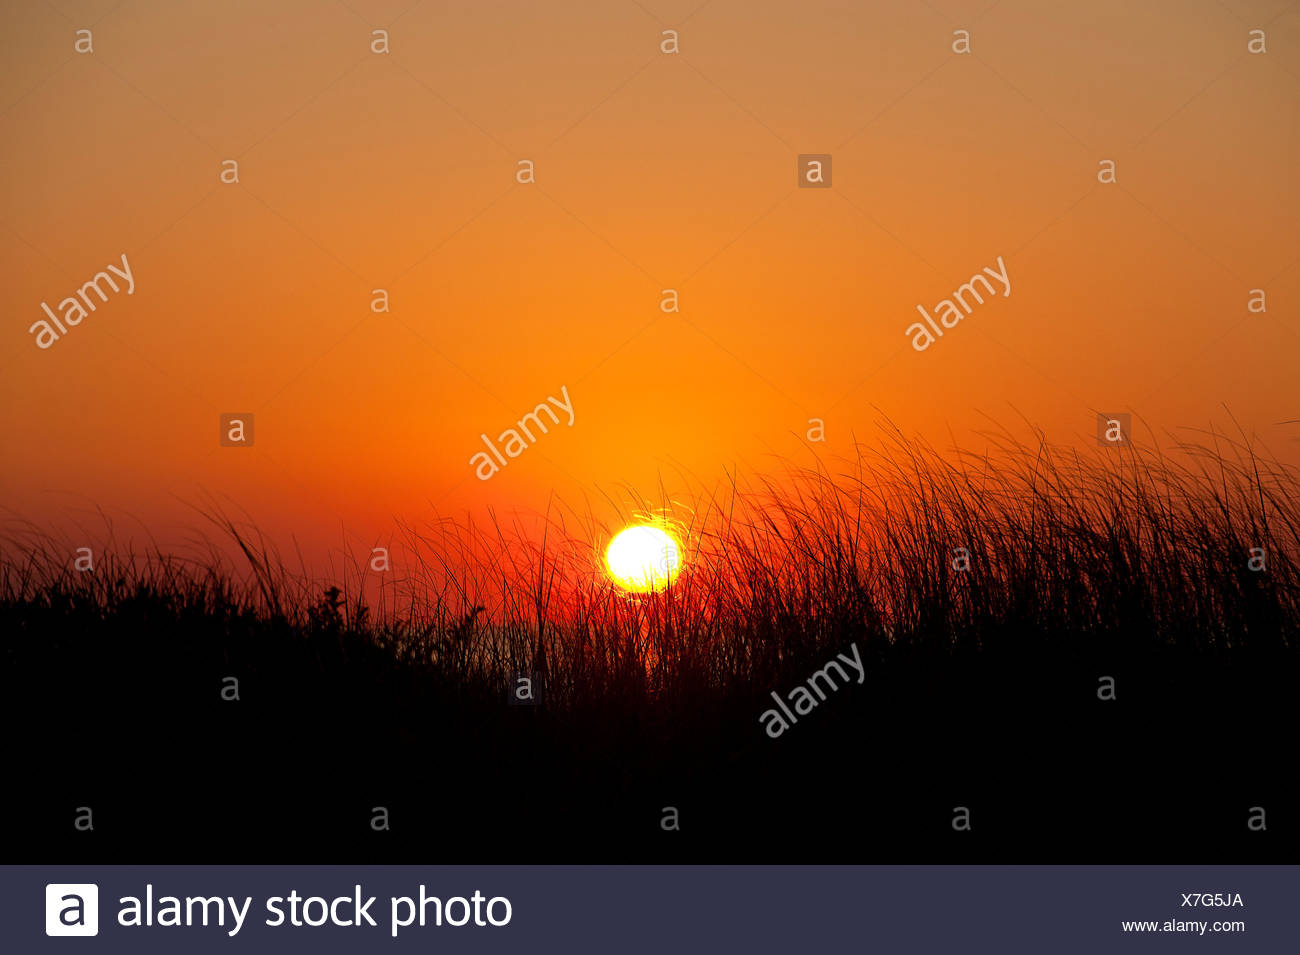 Coastal sunrise, Cape Cod, MA, USA - Stock Image